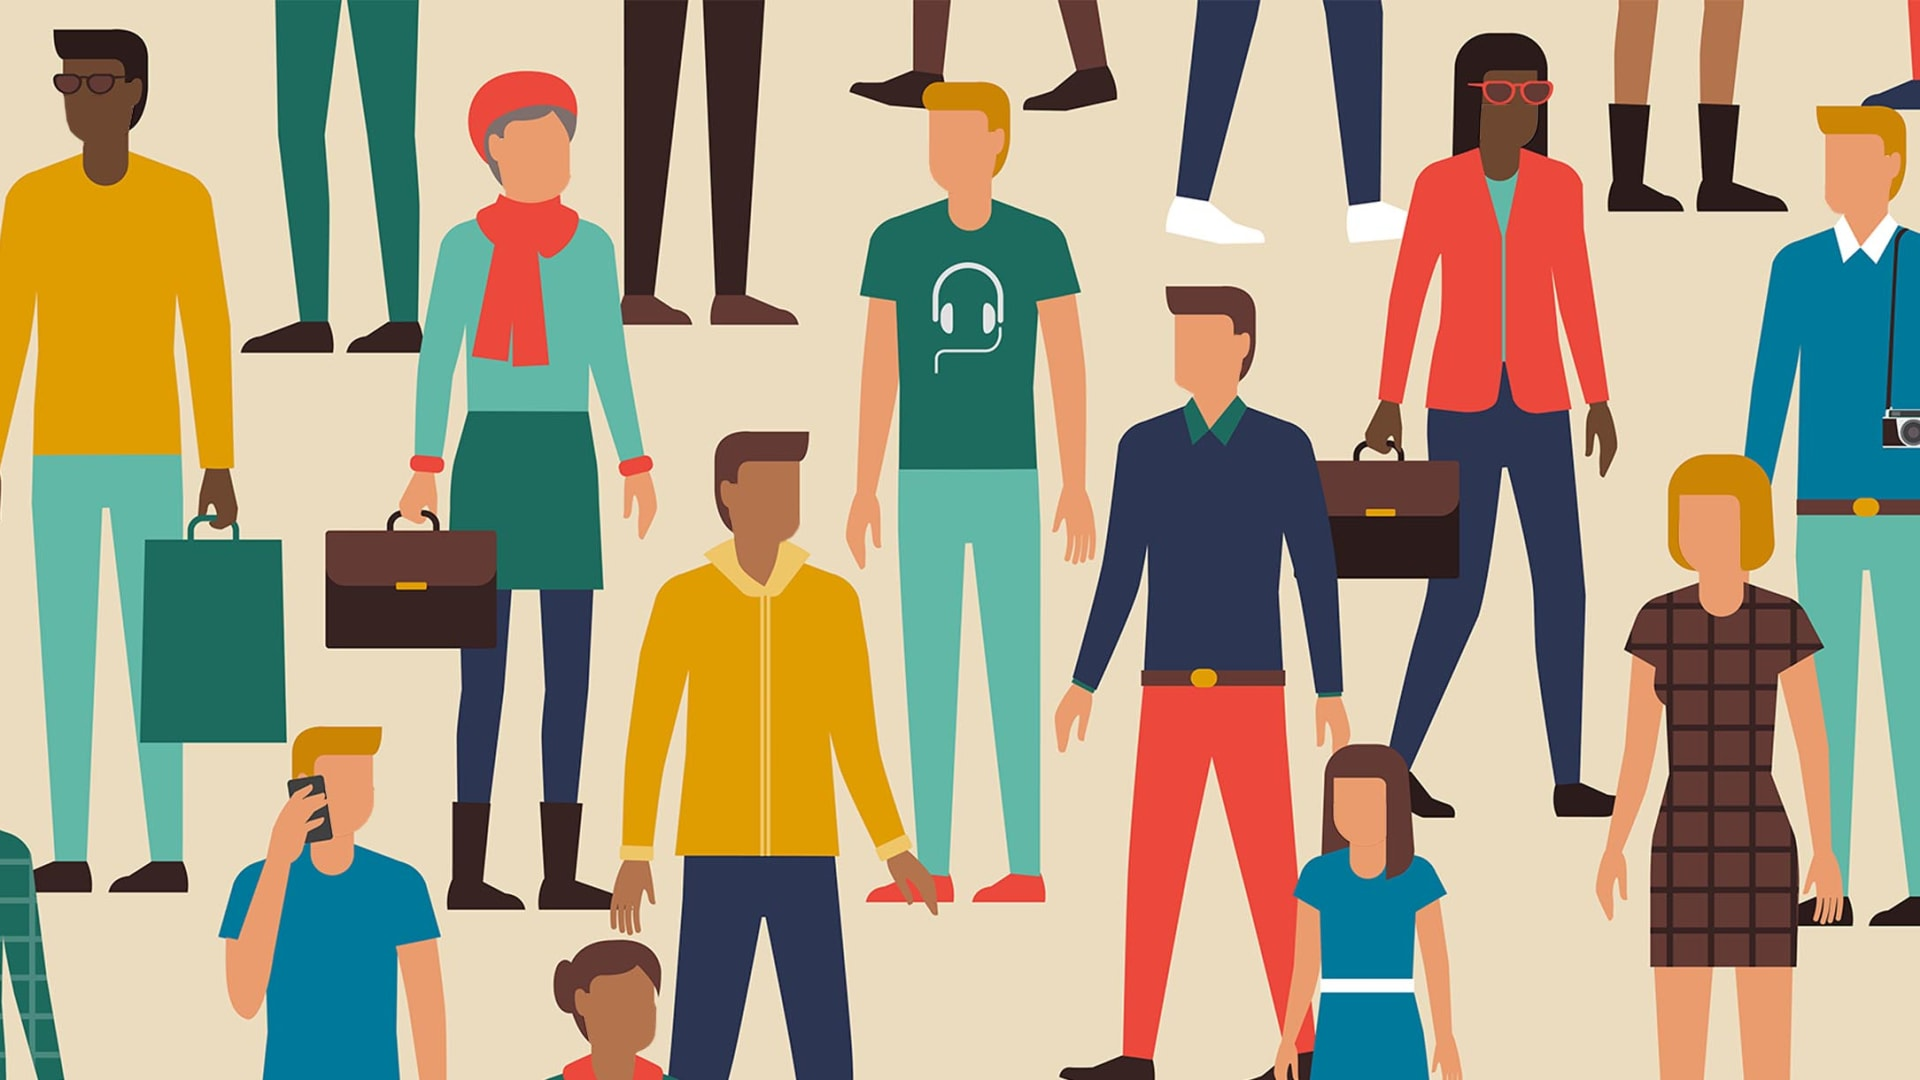 To Make Your Business Inclusive, You First Have to Understand What That Means